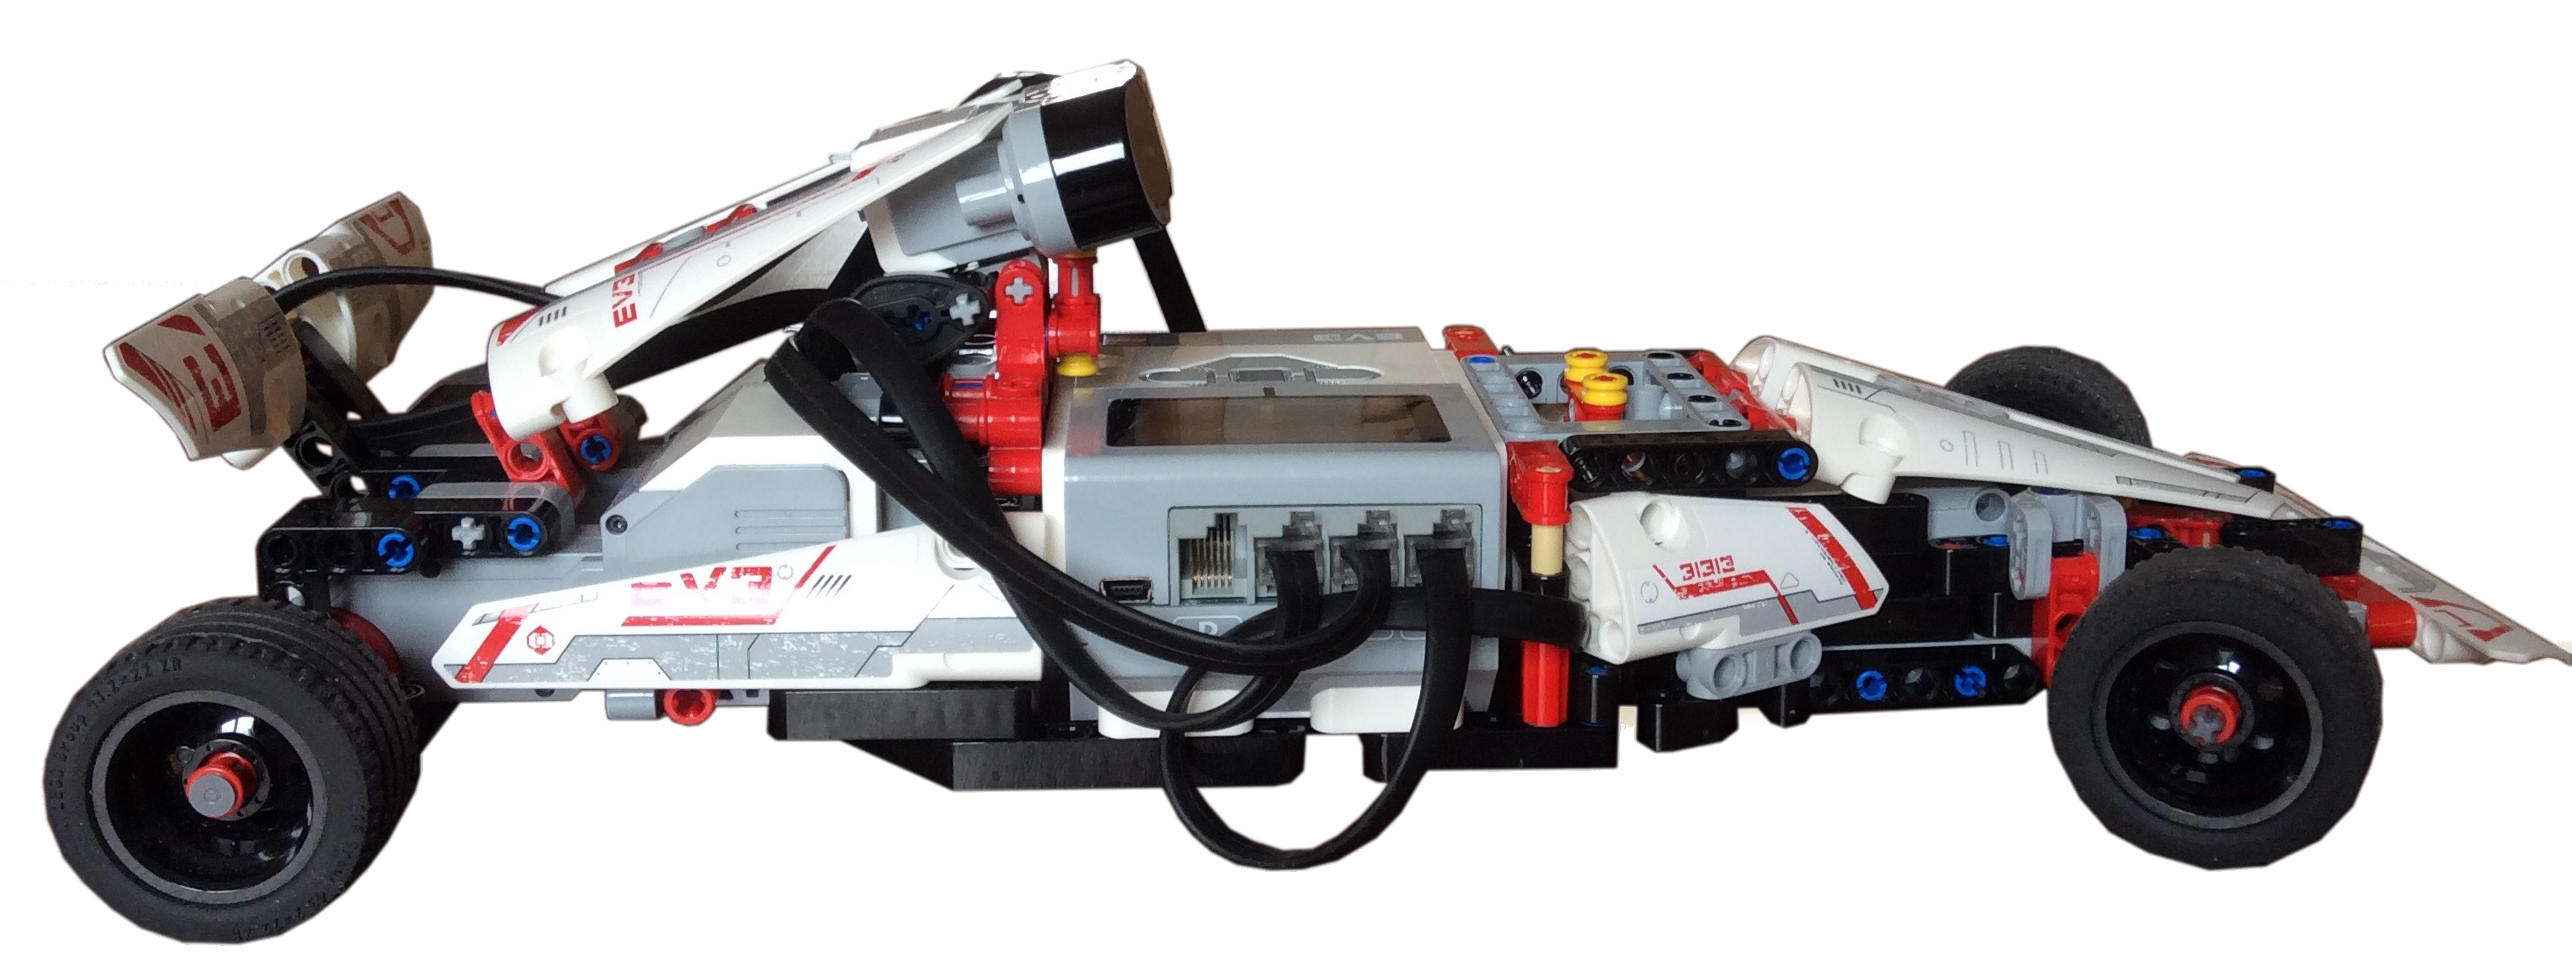 Formula Ev3 built with Lego Mindstorms